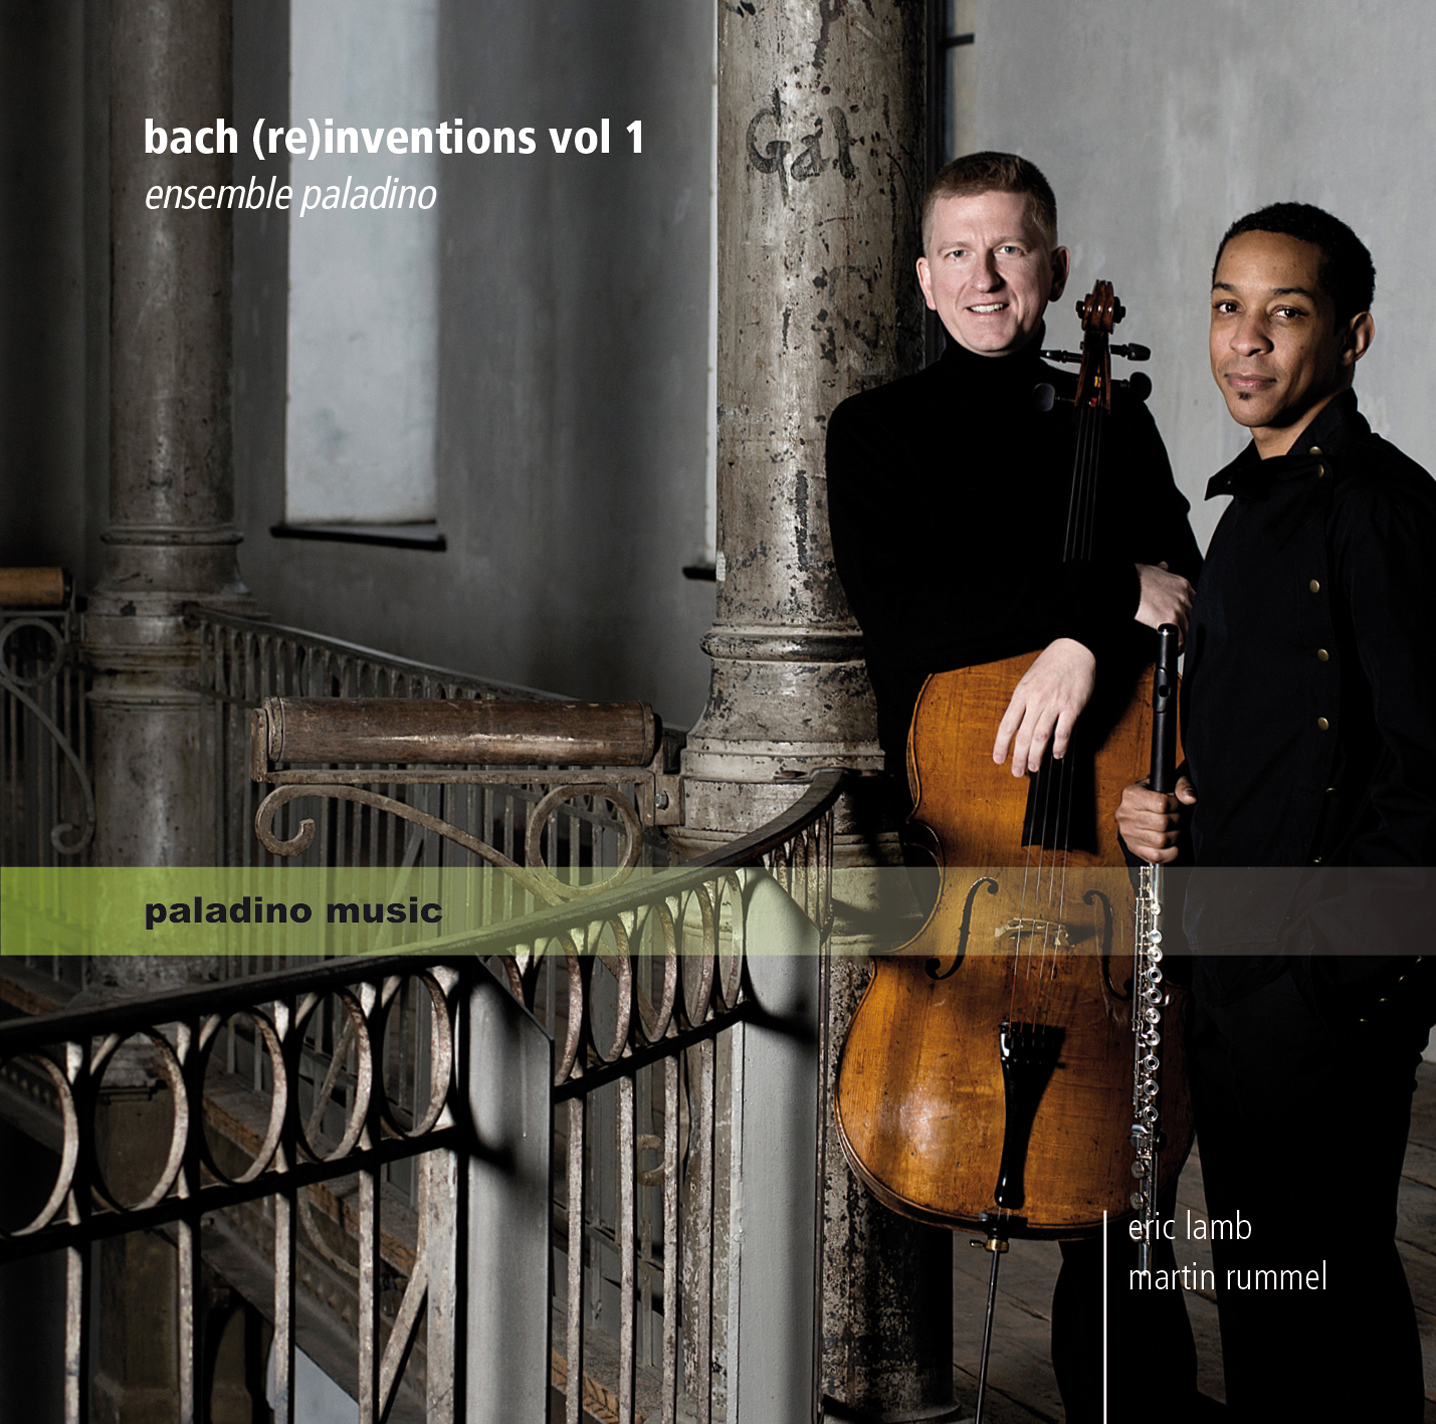 2-Part Inventions, BWV 772-786 (arr. E. Lamb and M. Rummel for flute and cello), 2-Part Inventions, BWV 772-786 (arr. E. Lamb and M. Rummel for flute and cello): Invention No. 1 in C Major, BWV 772